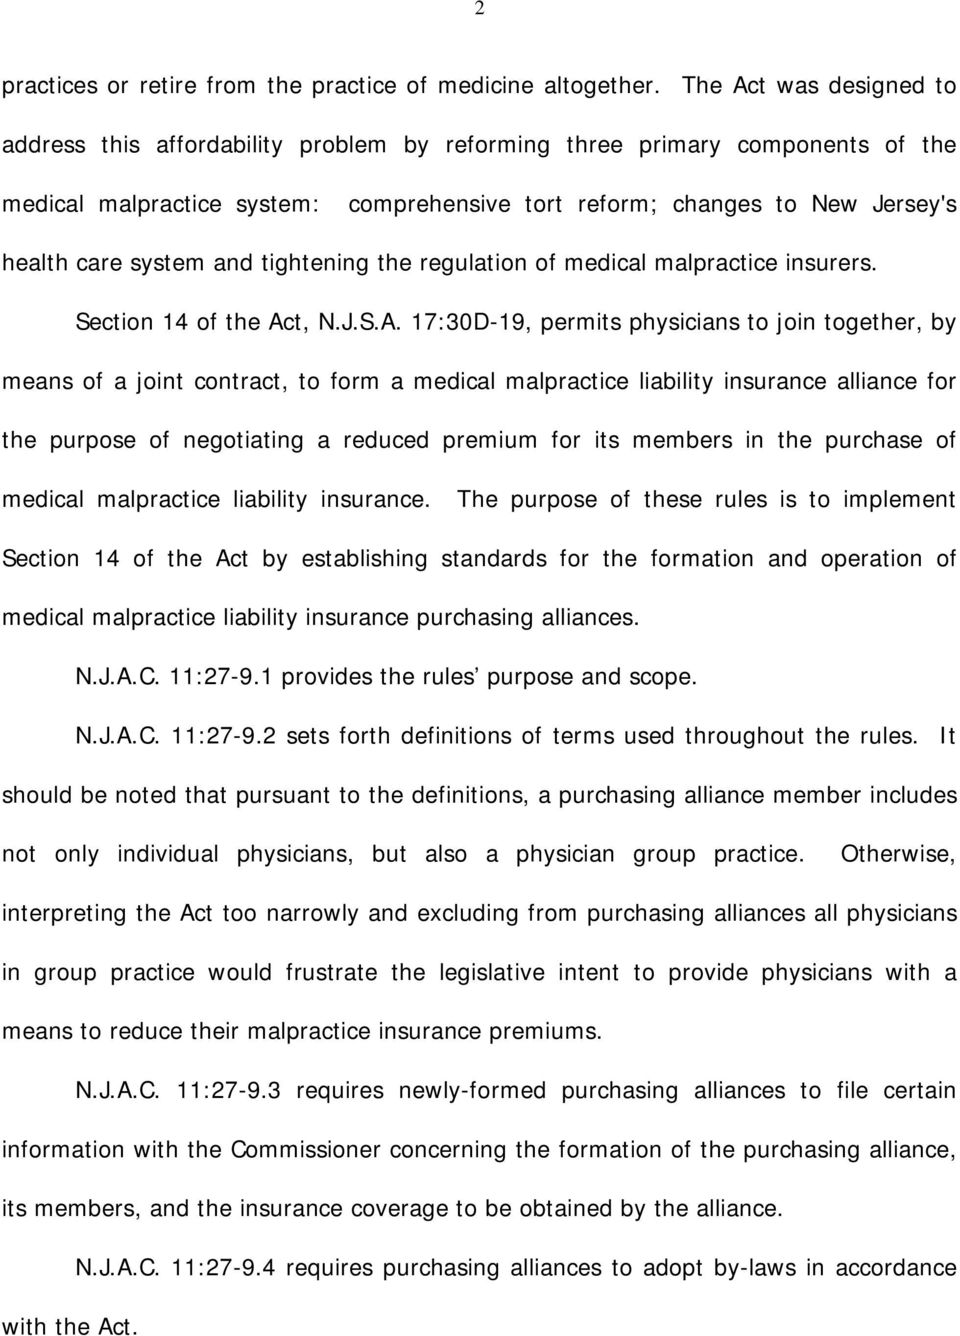 system and tightening the regulation of medical malpractice insurers. Section 14 of the Ac